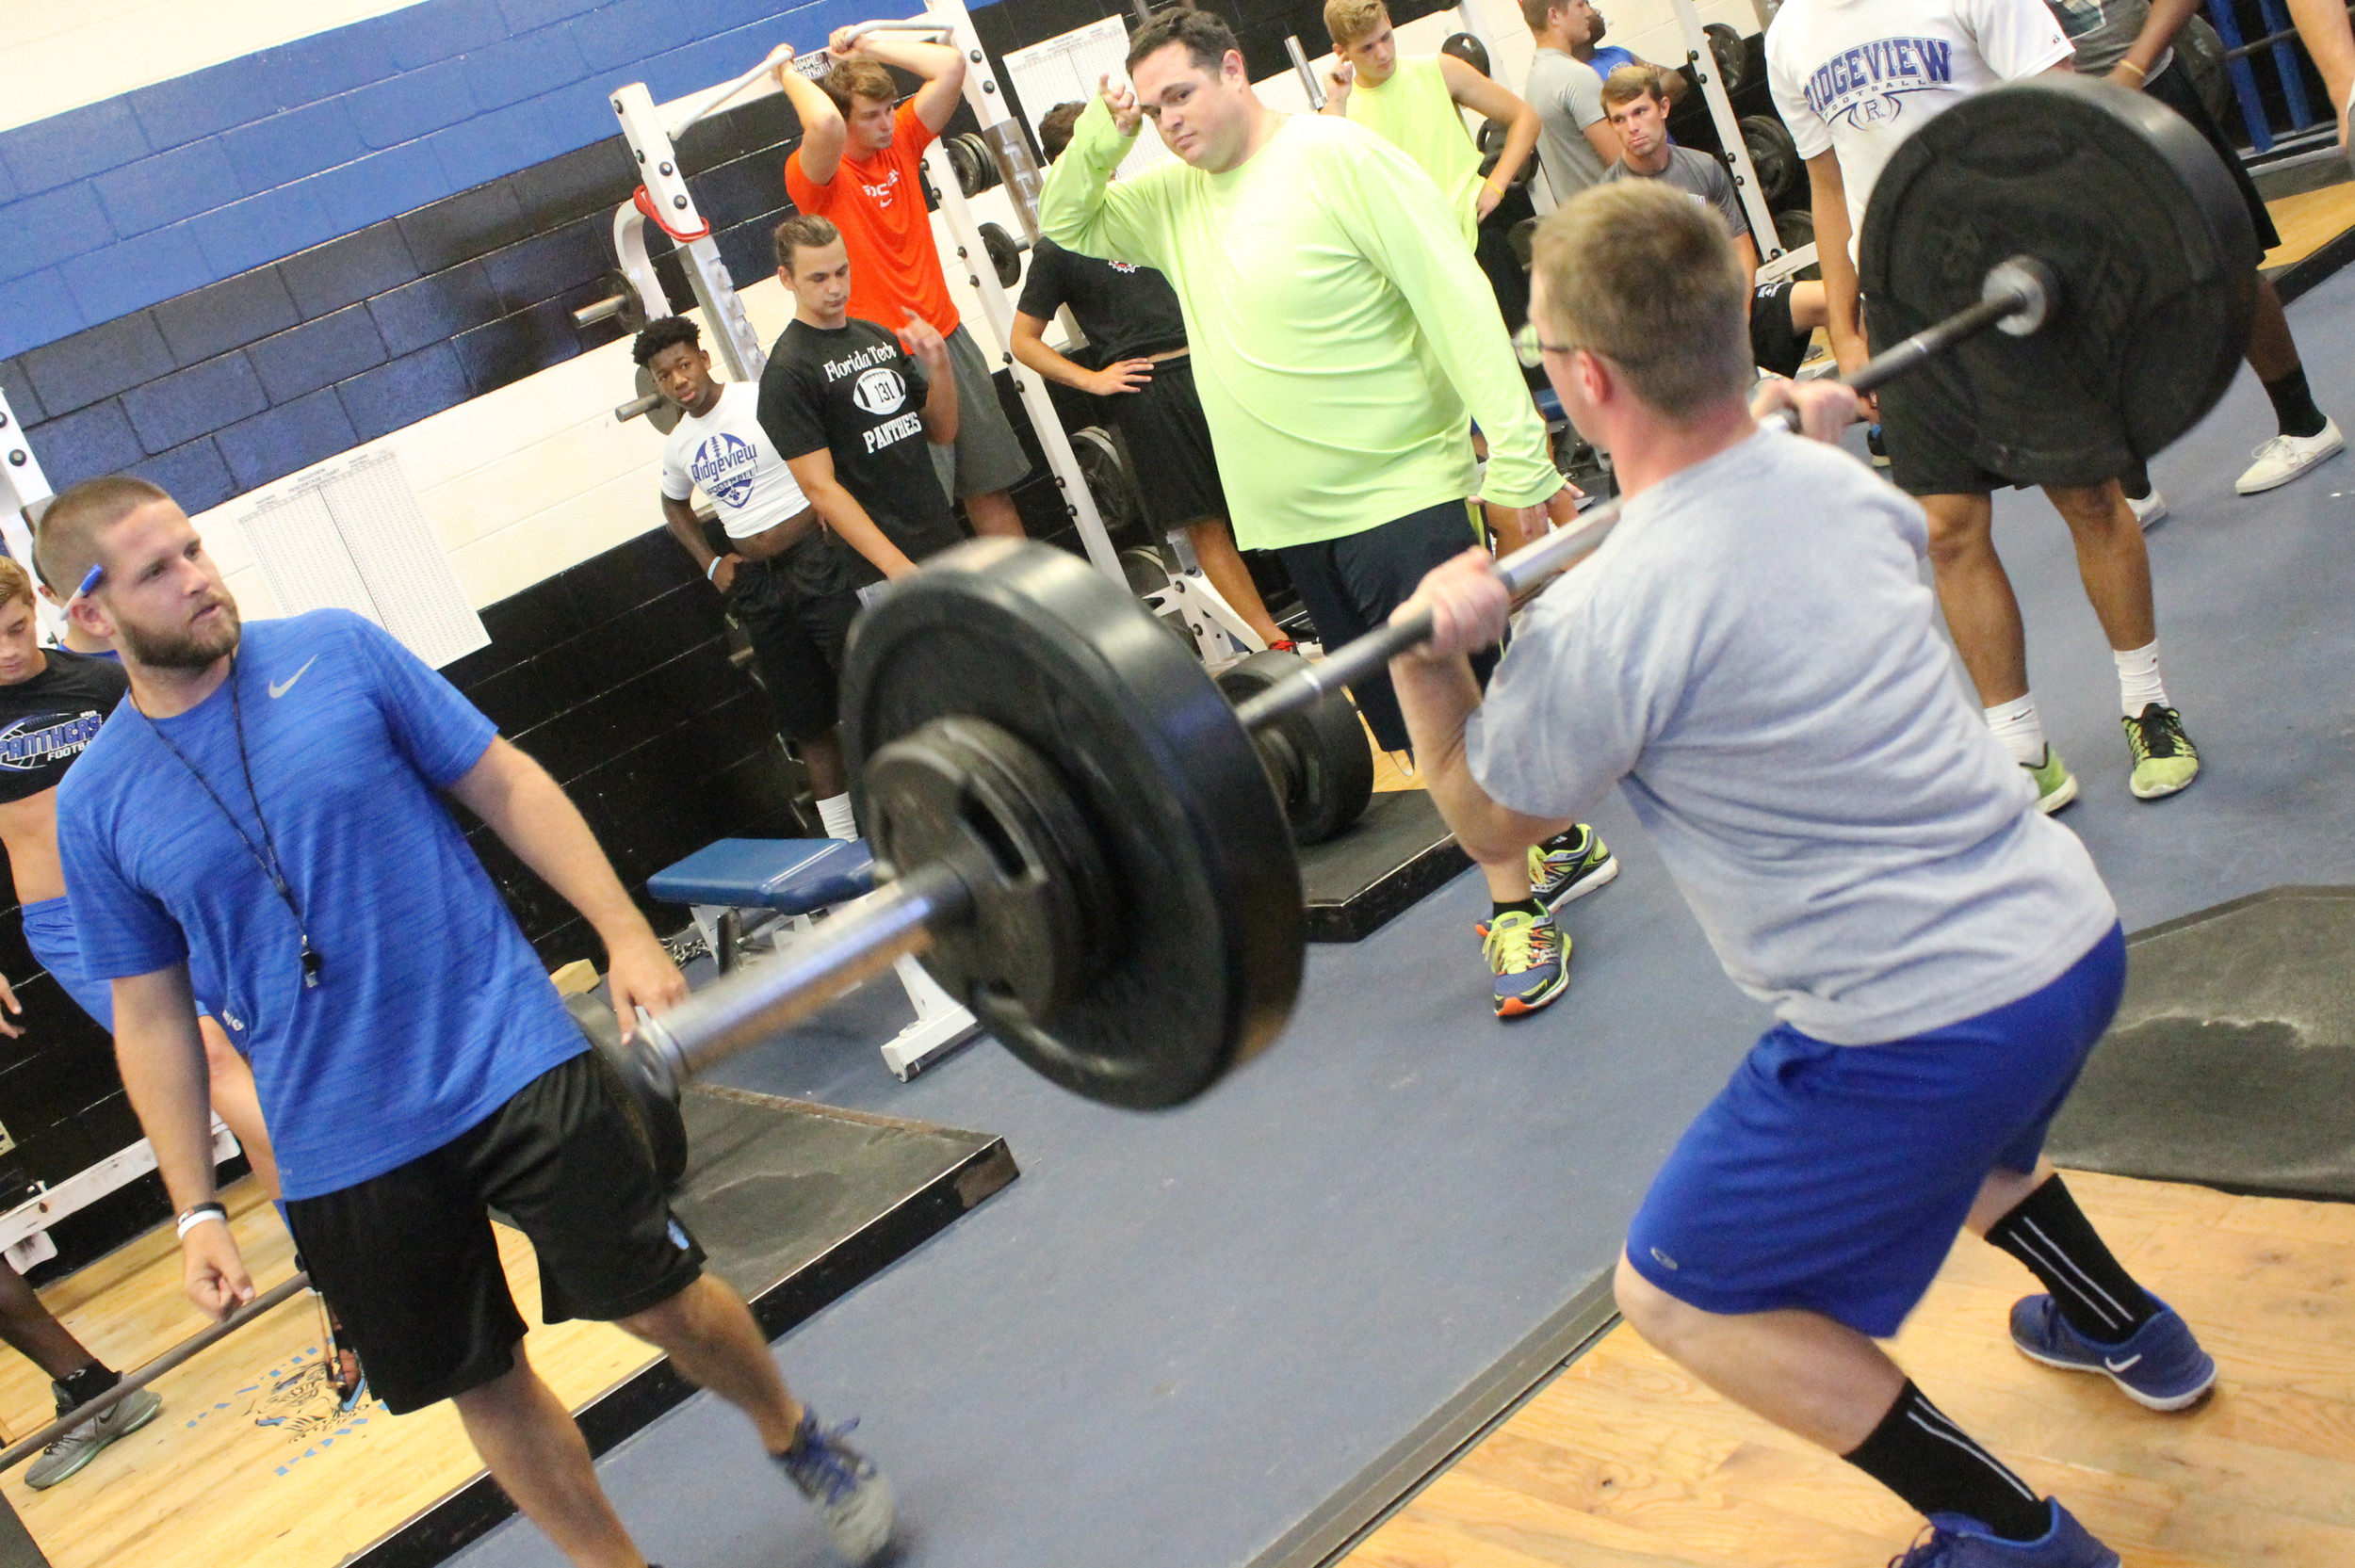 Ridgeview High first year coach Cameron Porch, left, watches fullback Nick Freeze press up some weights. Porch, also a weightlift coach, has pushed his Panthers in the weight room with enthusiastic improvements over the summer.